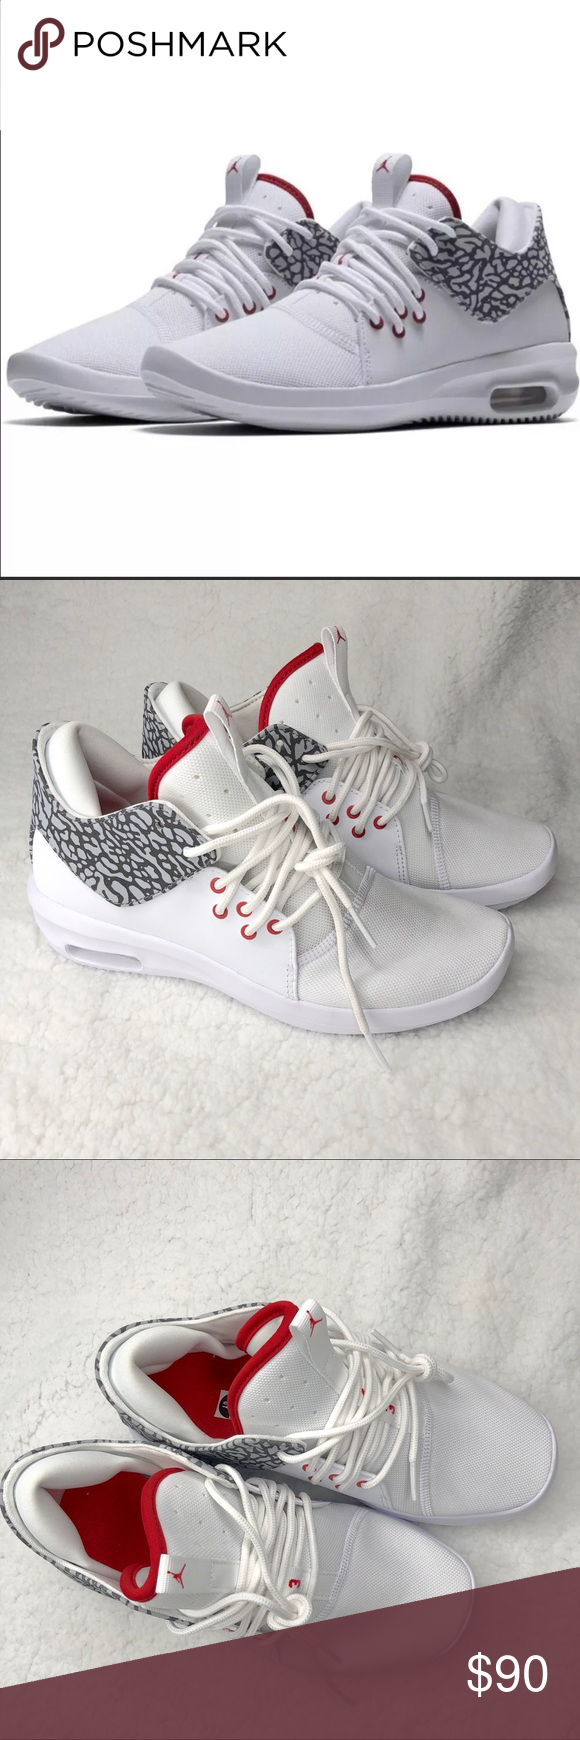 new concept e444e 7e313 Nike Air Jordan First Class White and Red NWOT, only have ...